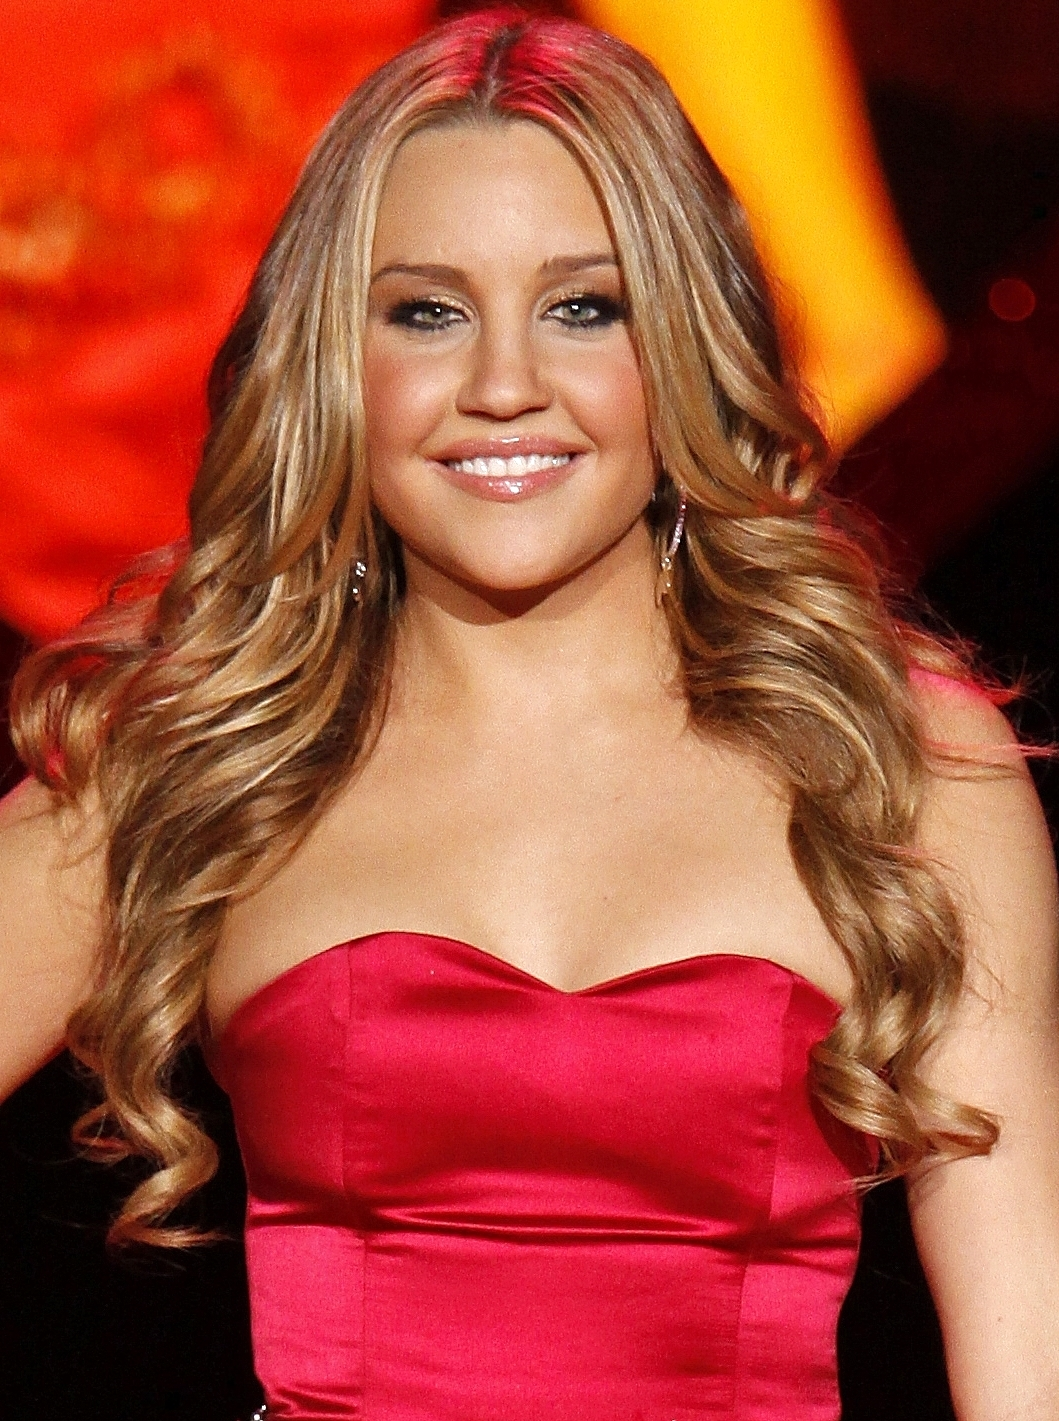 Amanda Bynes Denies Being Evicted From New York City Apartment Amanda Bynes Denies Being Evicted From New York City Apartment